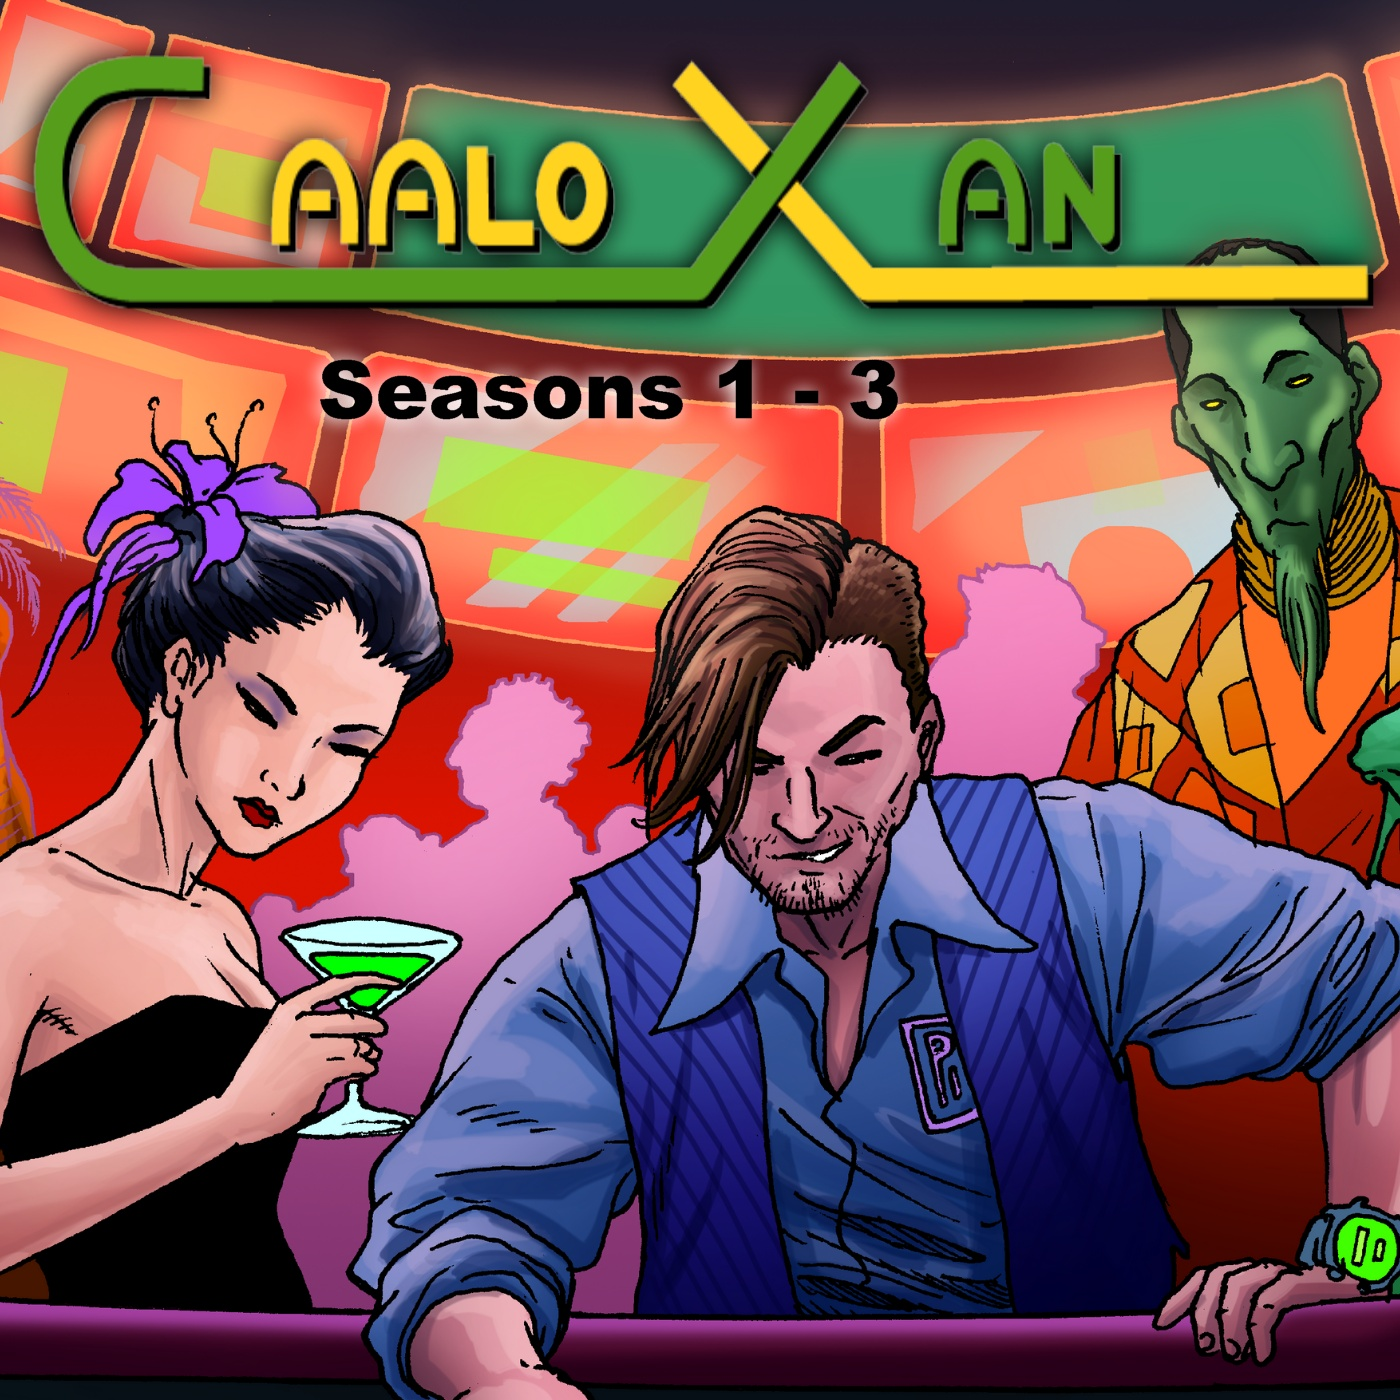 Episode – Caalo Xan: Sci-Fi Audio Drama